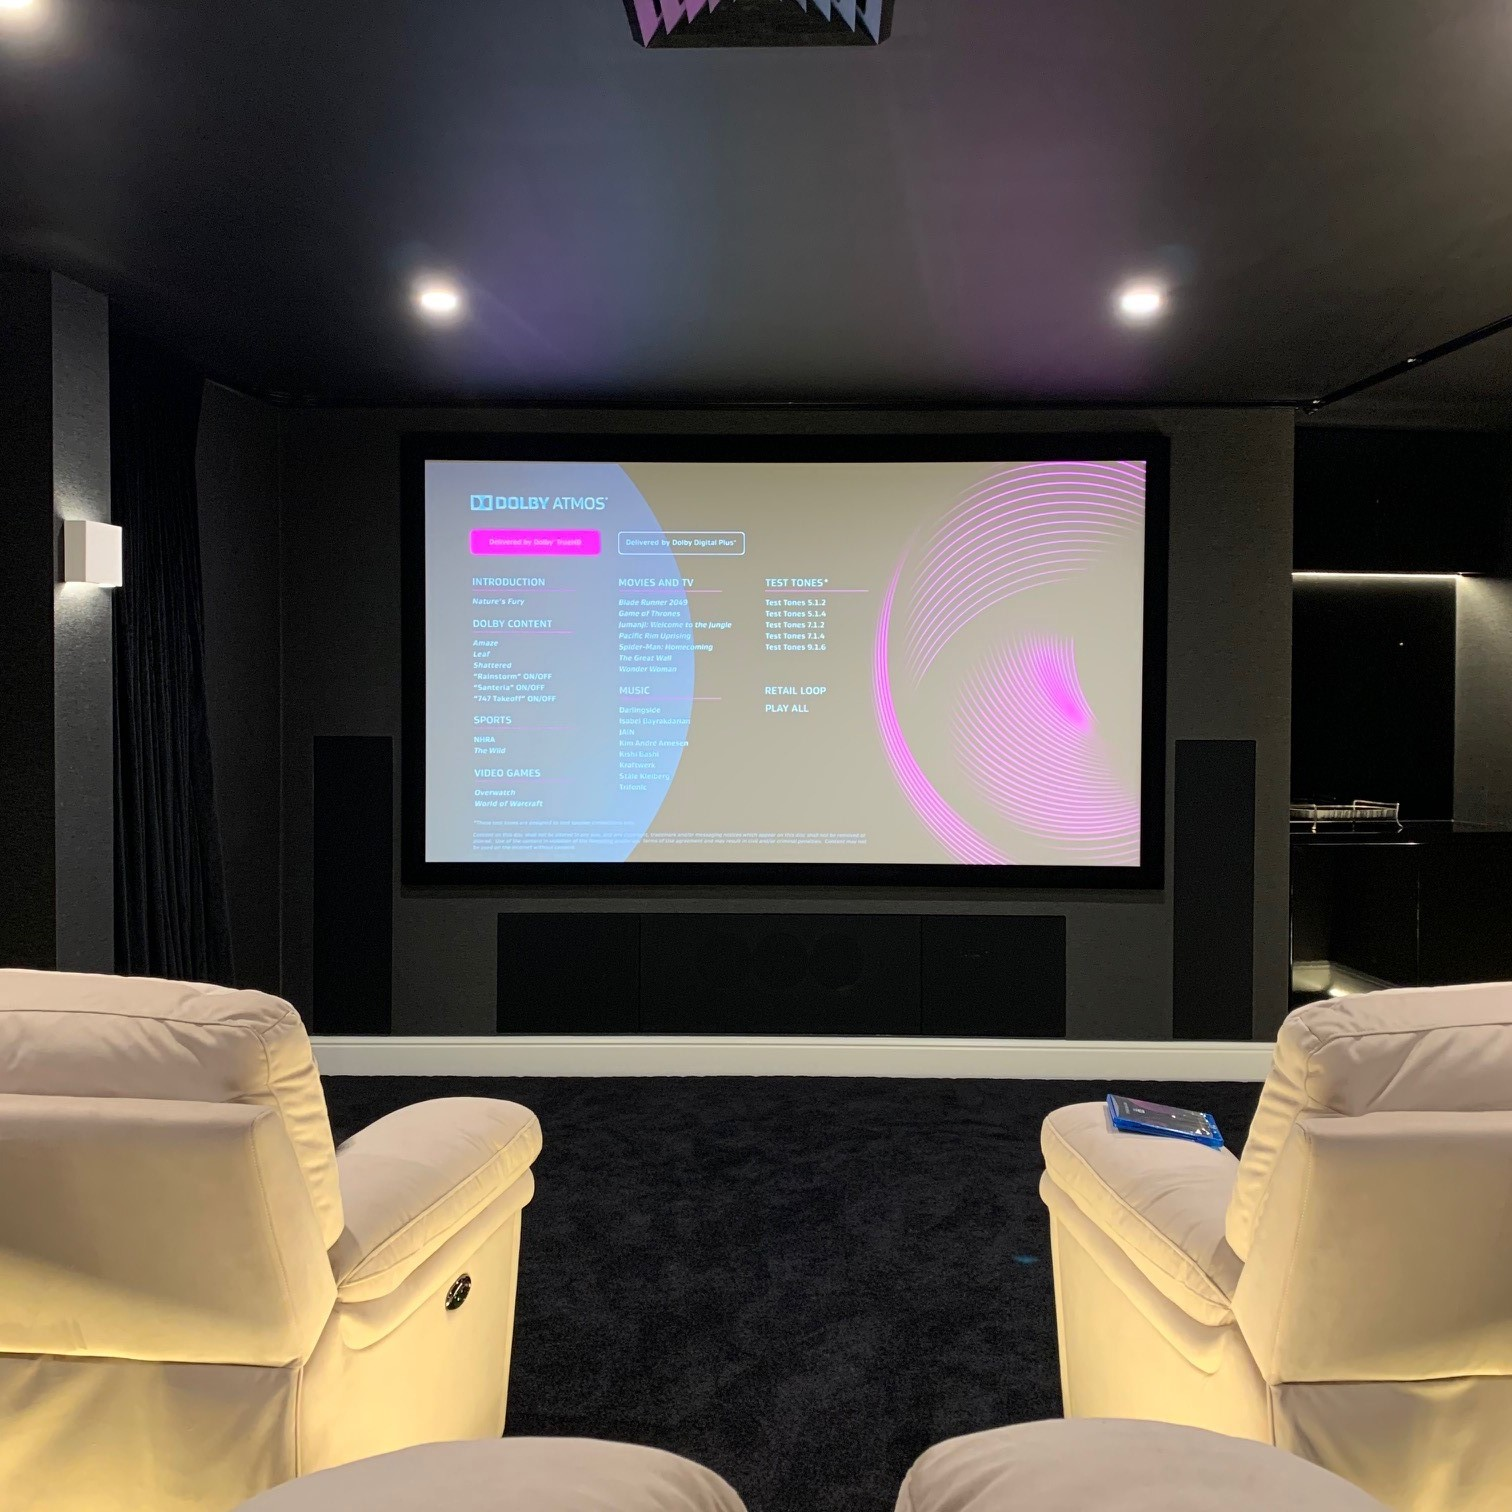 <h3>Setting Up Your Home Theatre: Everything That You Should Know</h3>